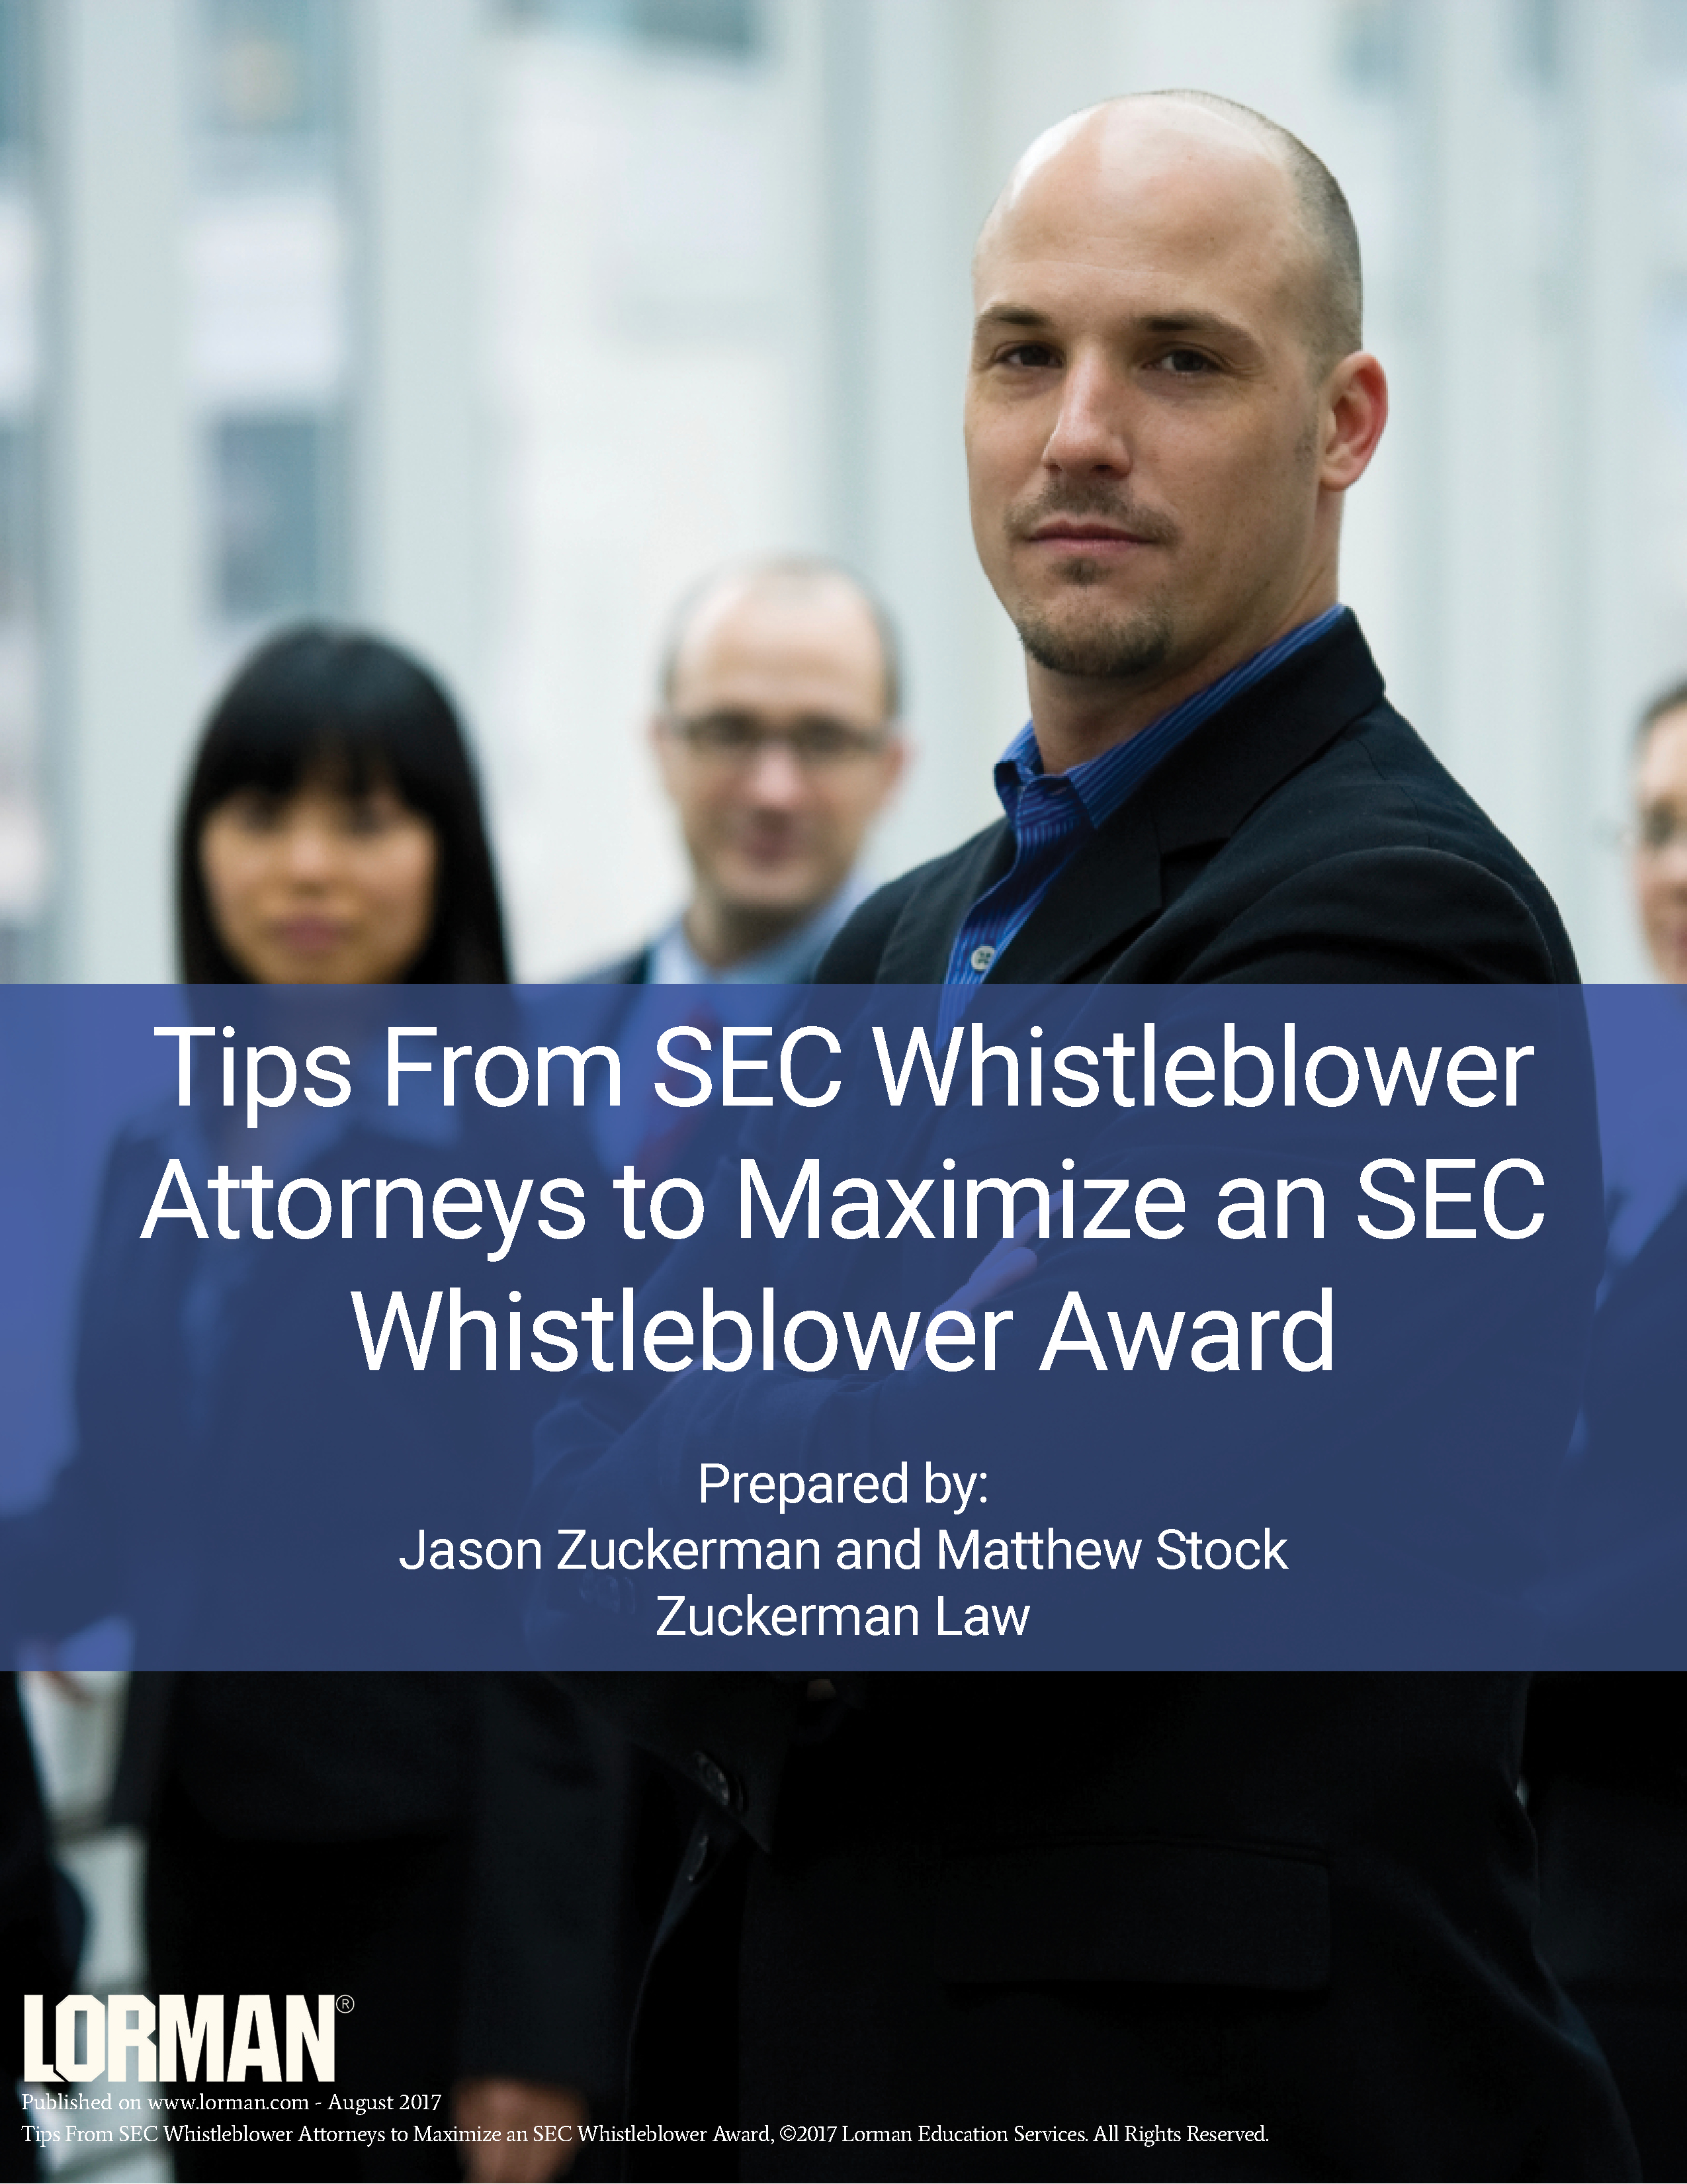 Tips From SEC Whistleblower Attorneys to Maximize an SEC Whistleblower Award